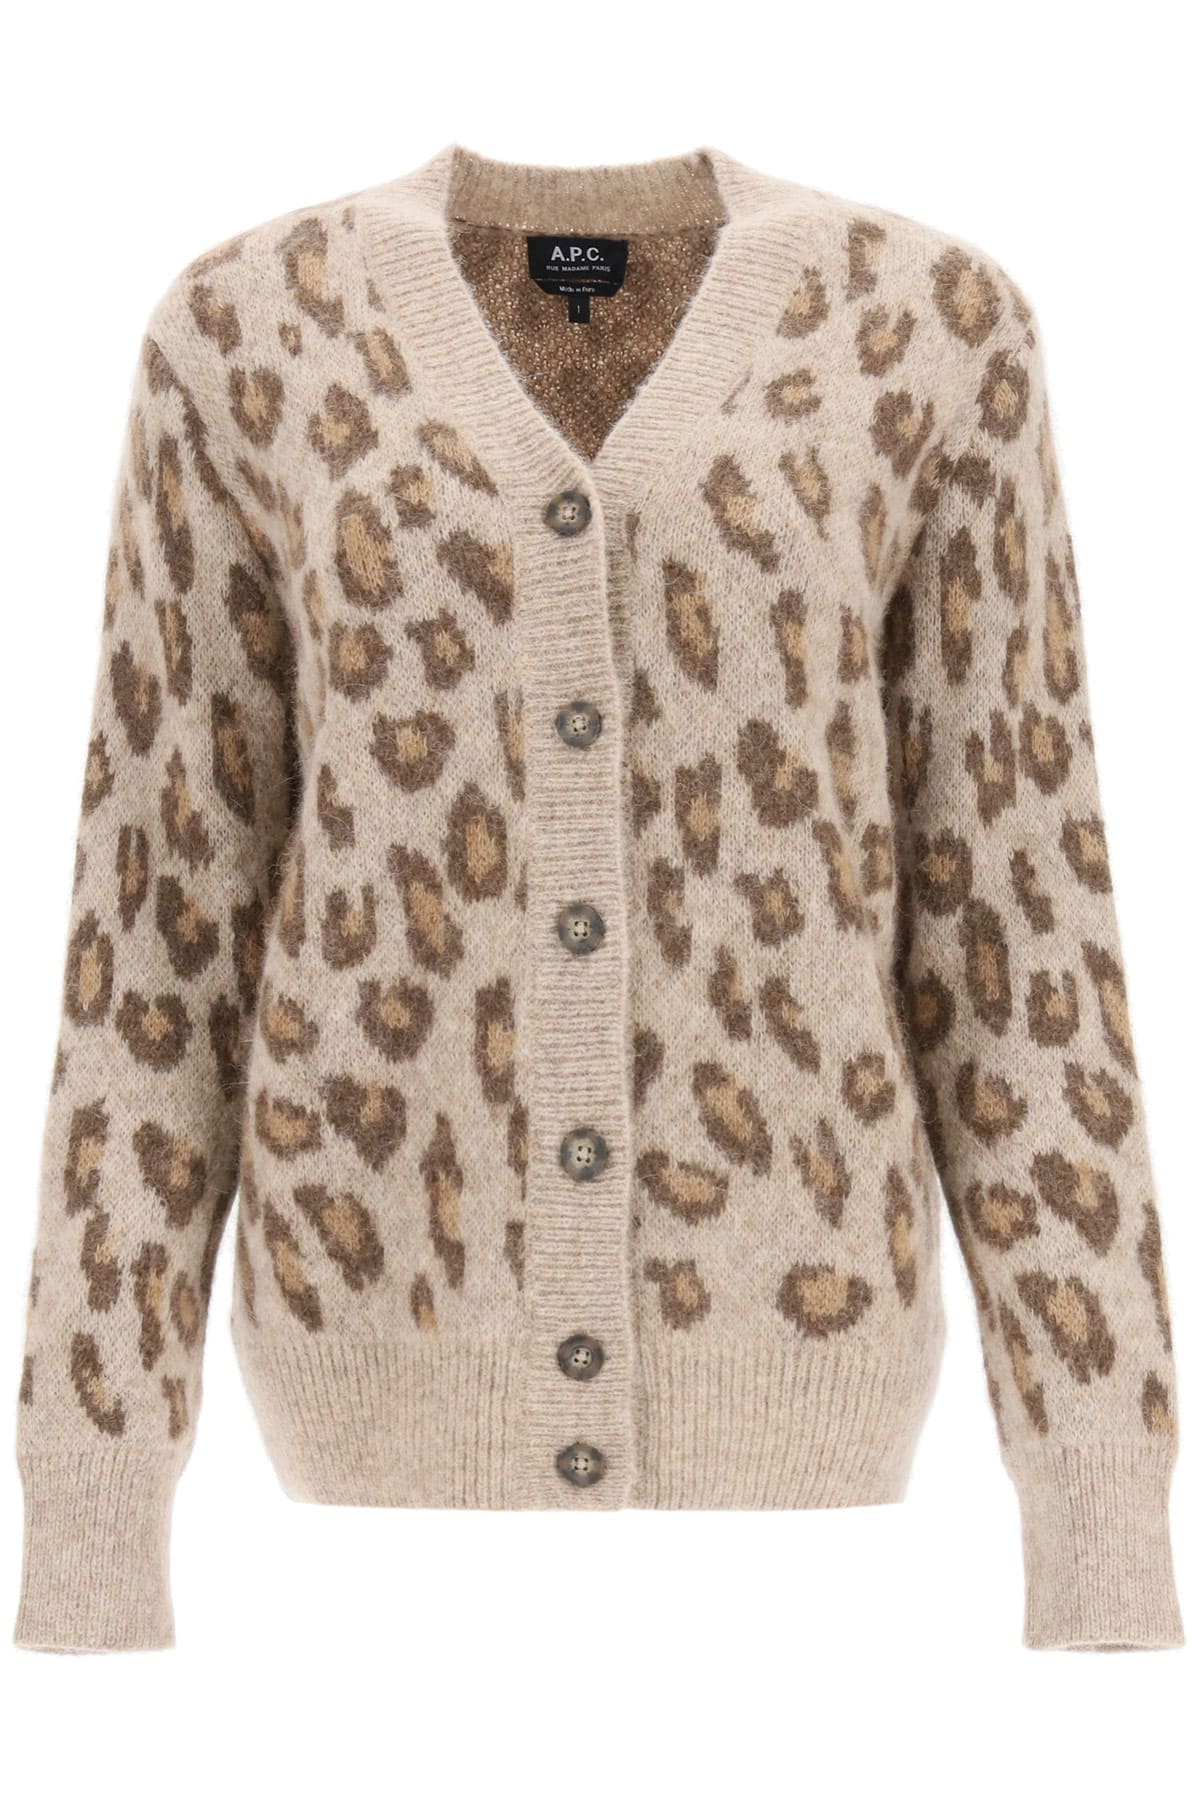 A.P.C. ERIKA ANIMAL CARDIGAN